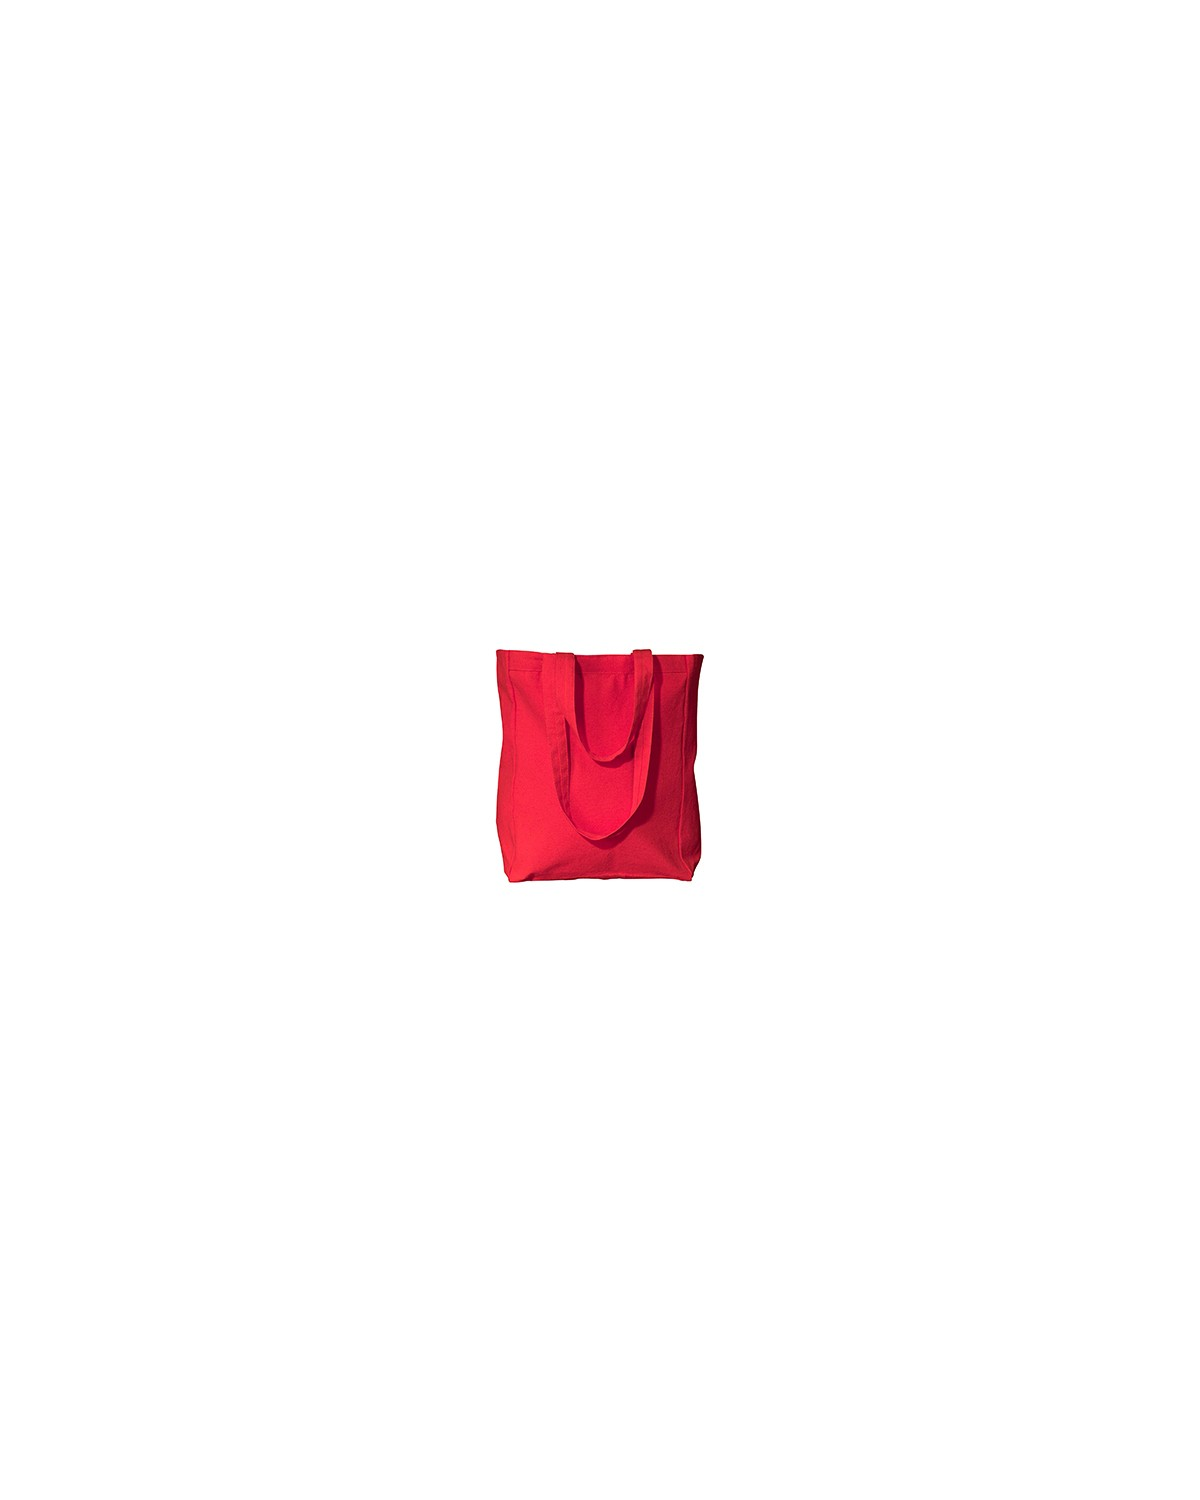 8861 Liberty Bags RED